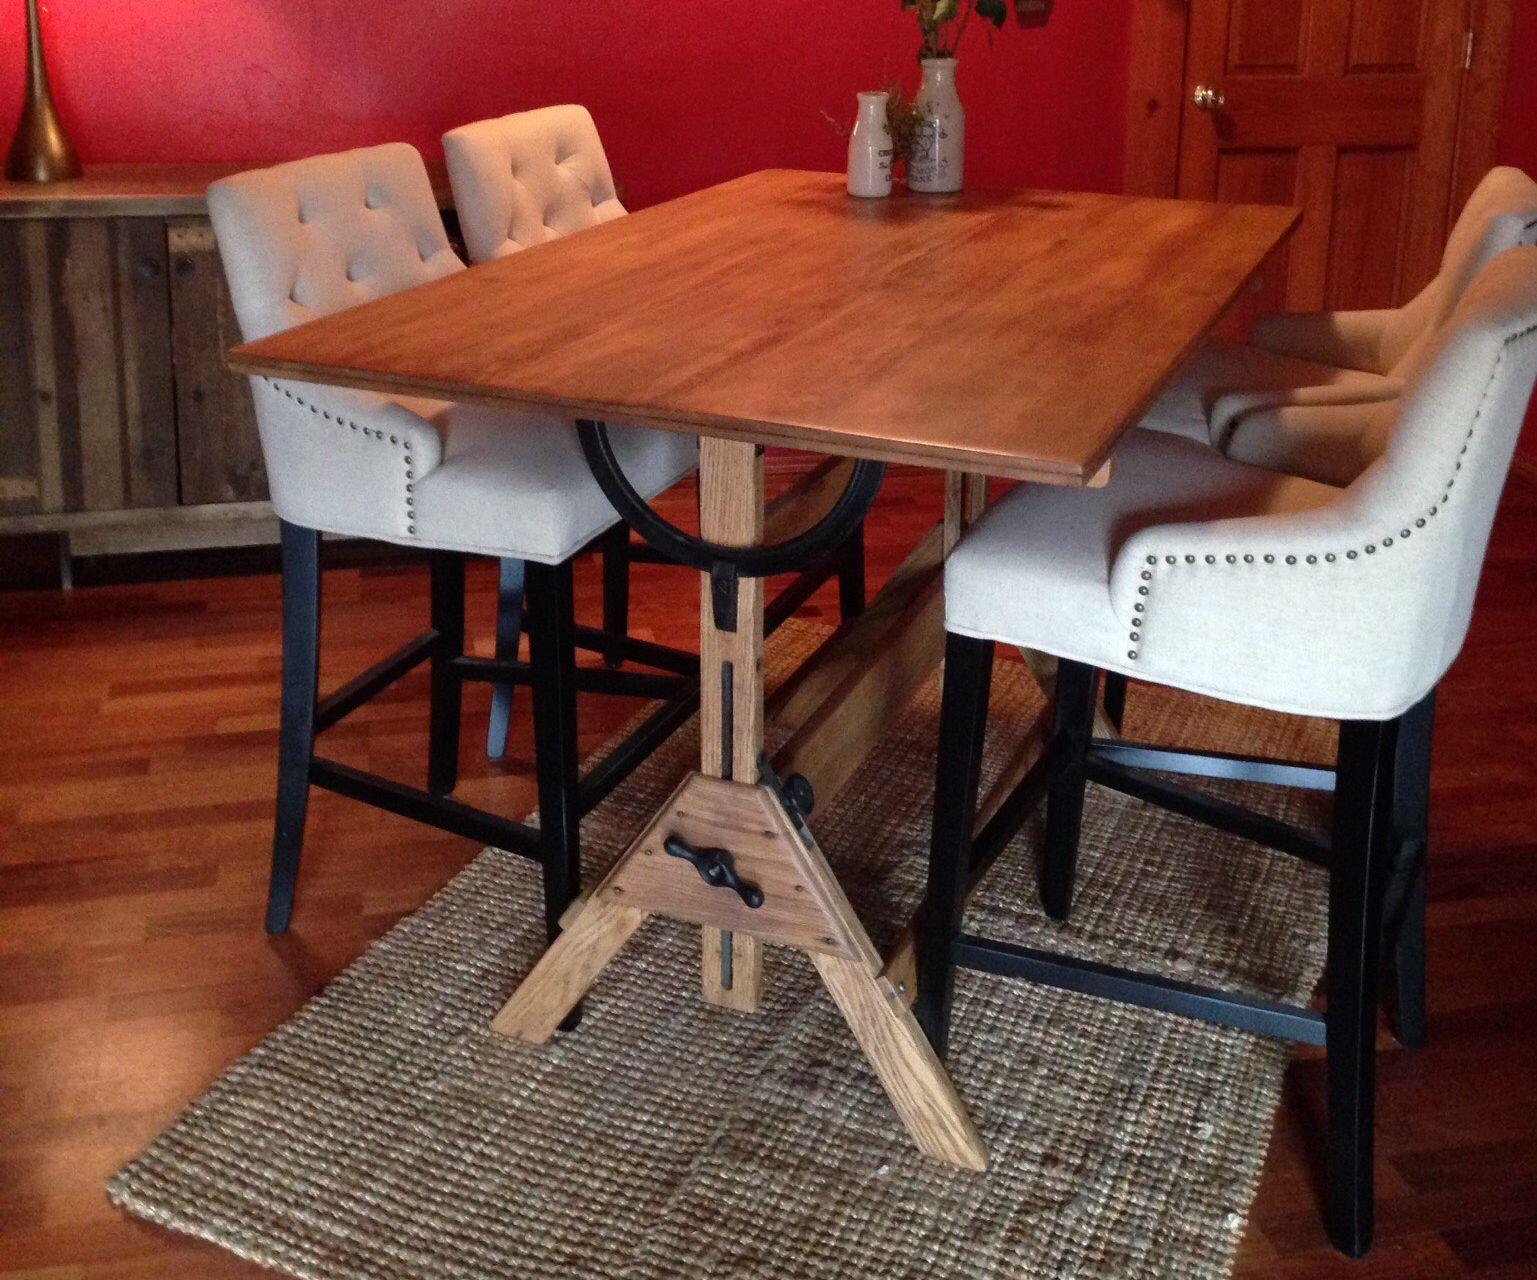 Restoring and Repurposing a Drafting Table as a Dining Table